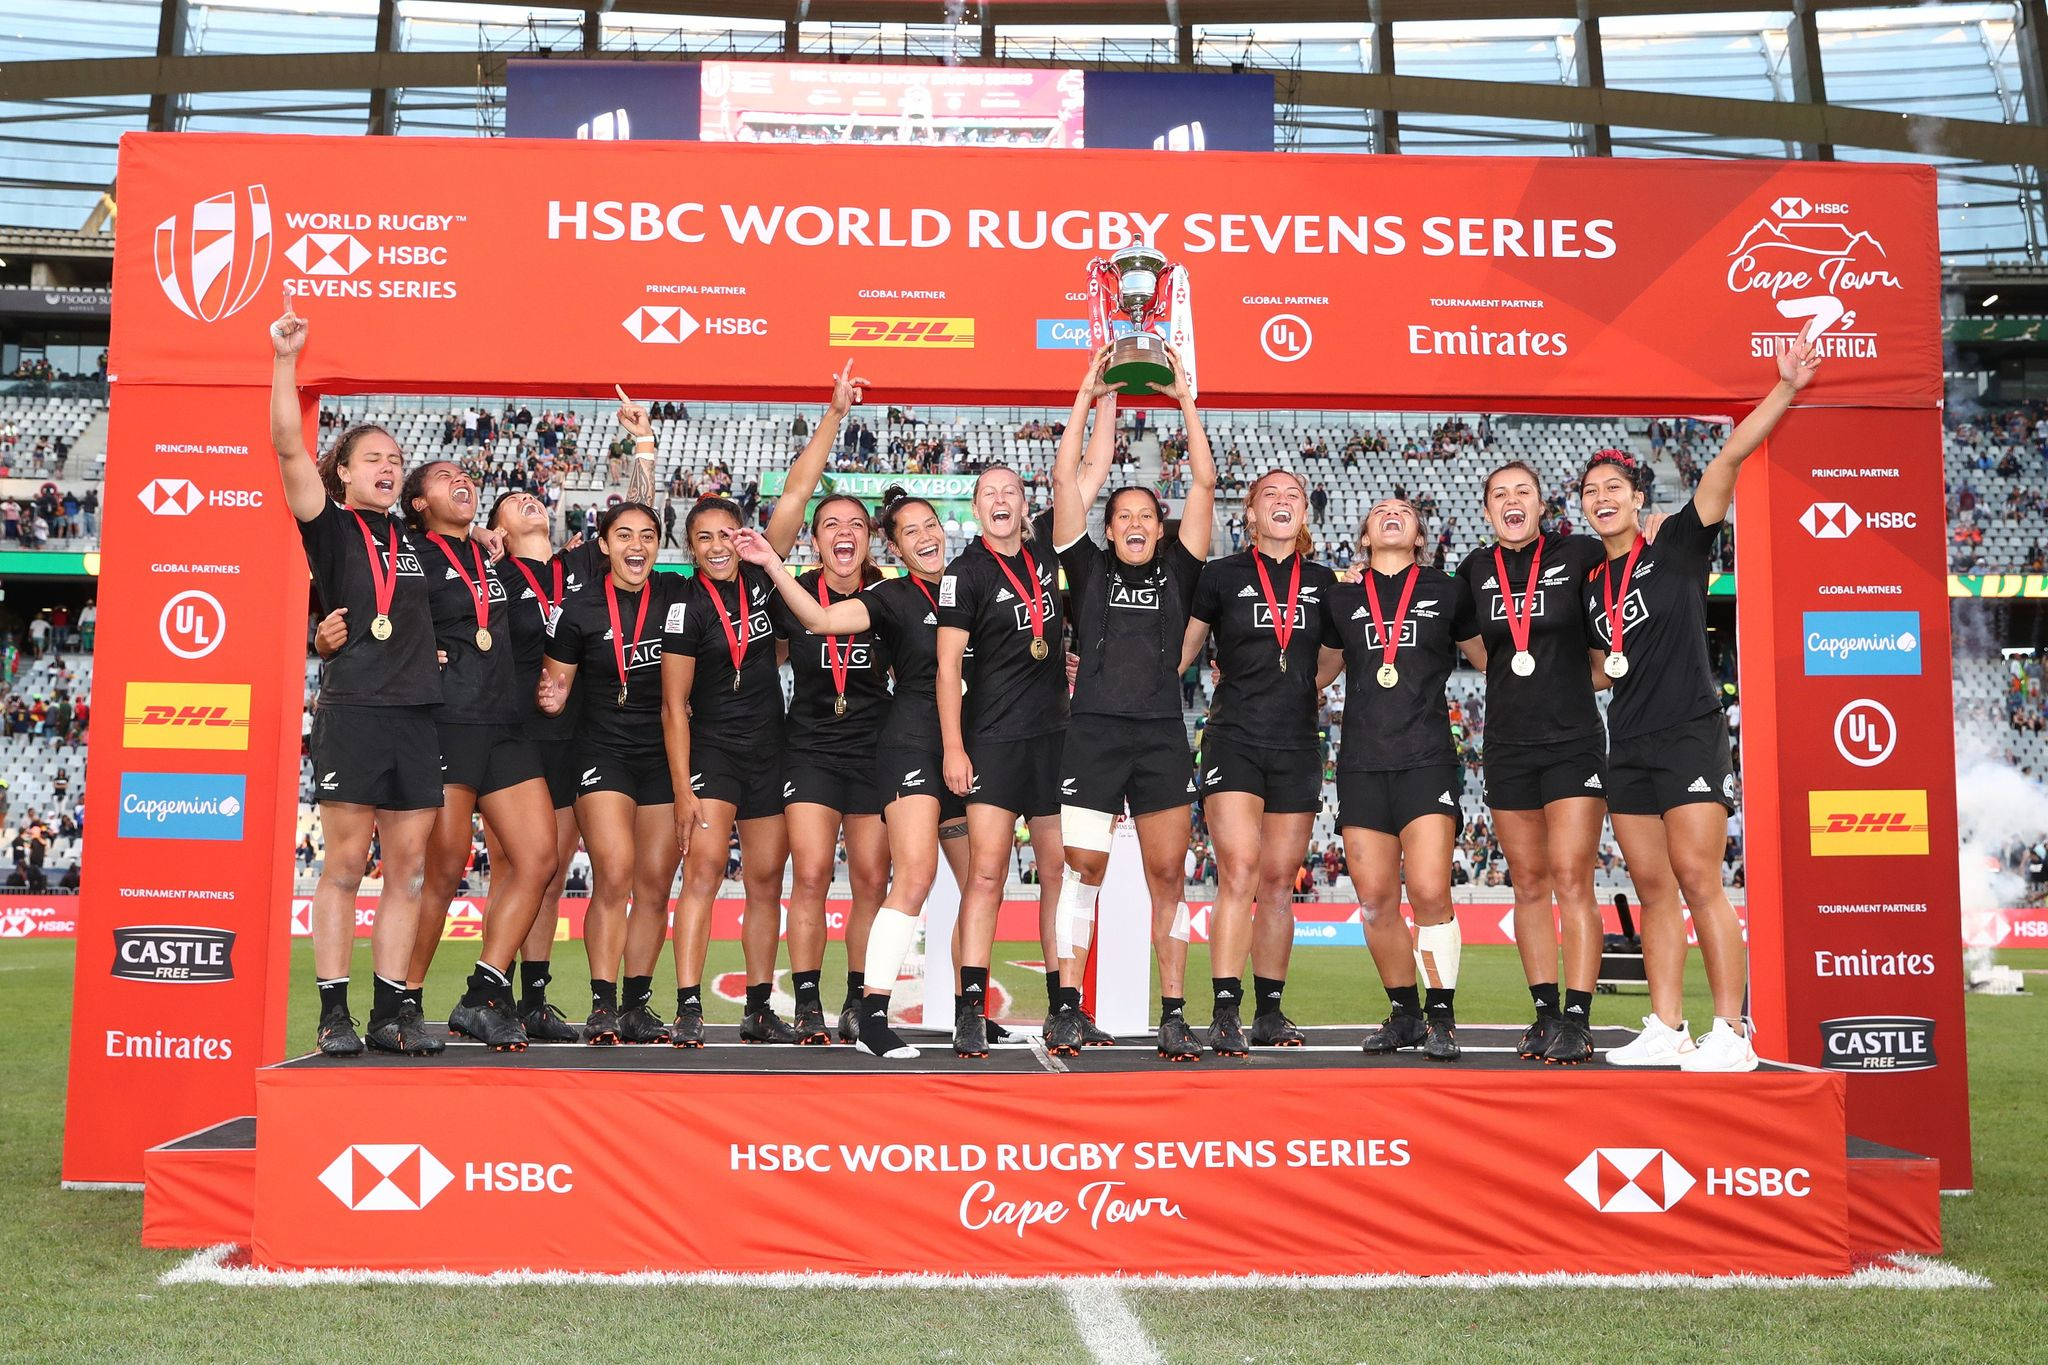 2019 Cape Town 7s Champion - New Zealand